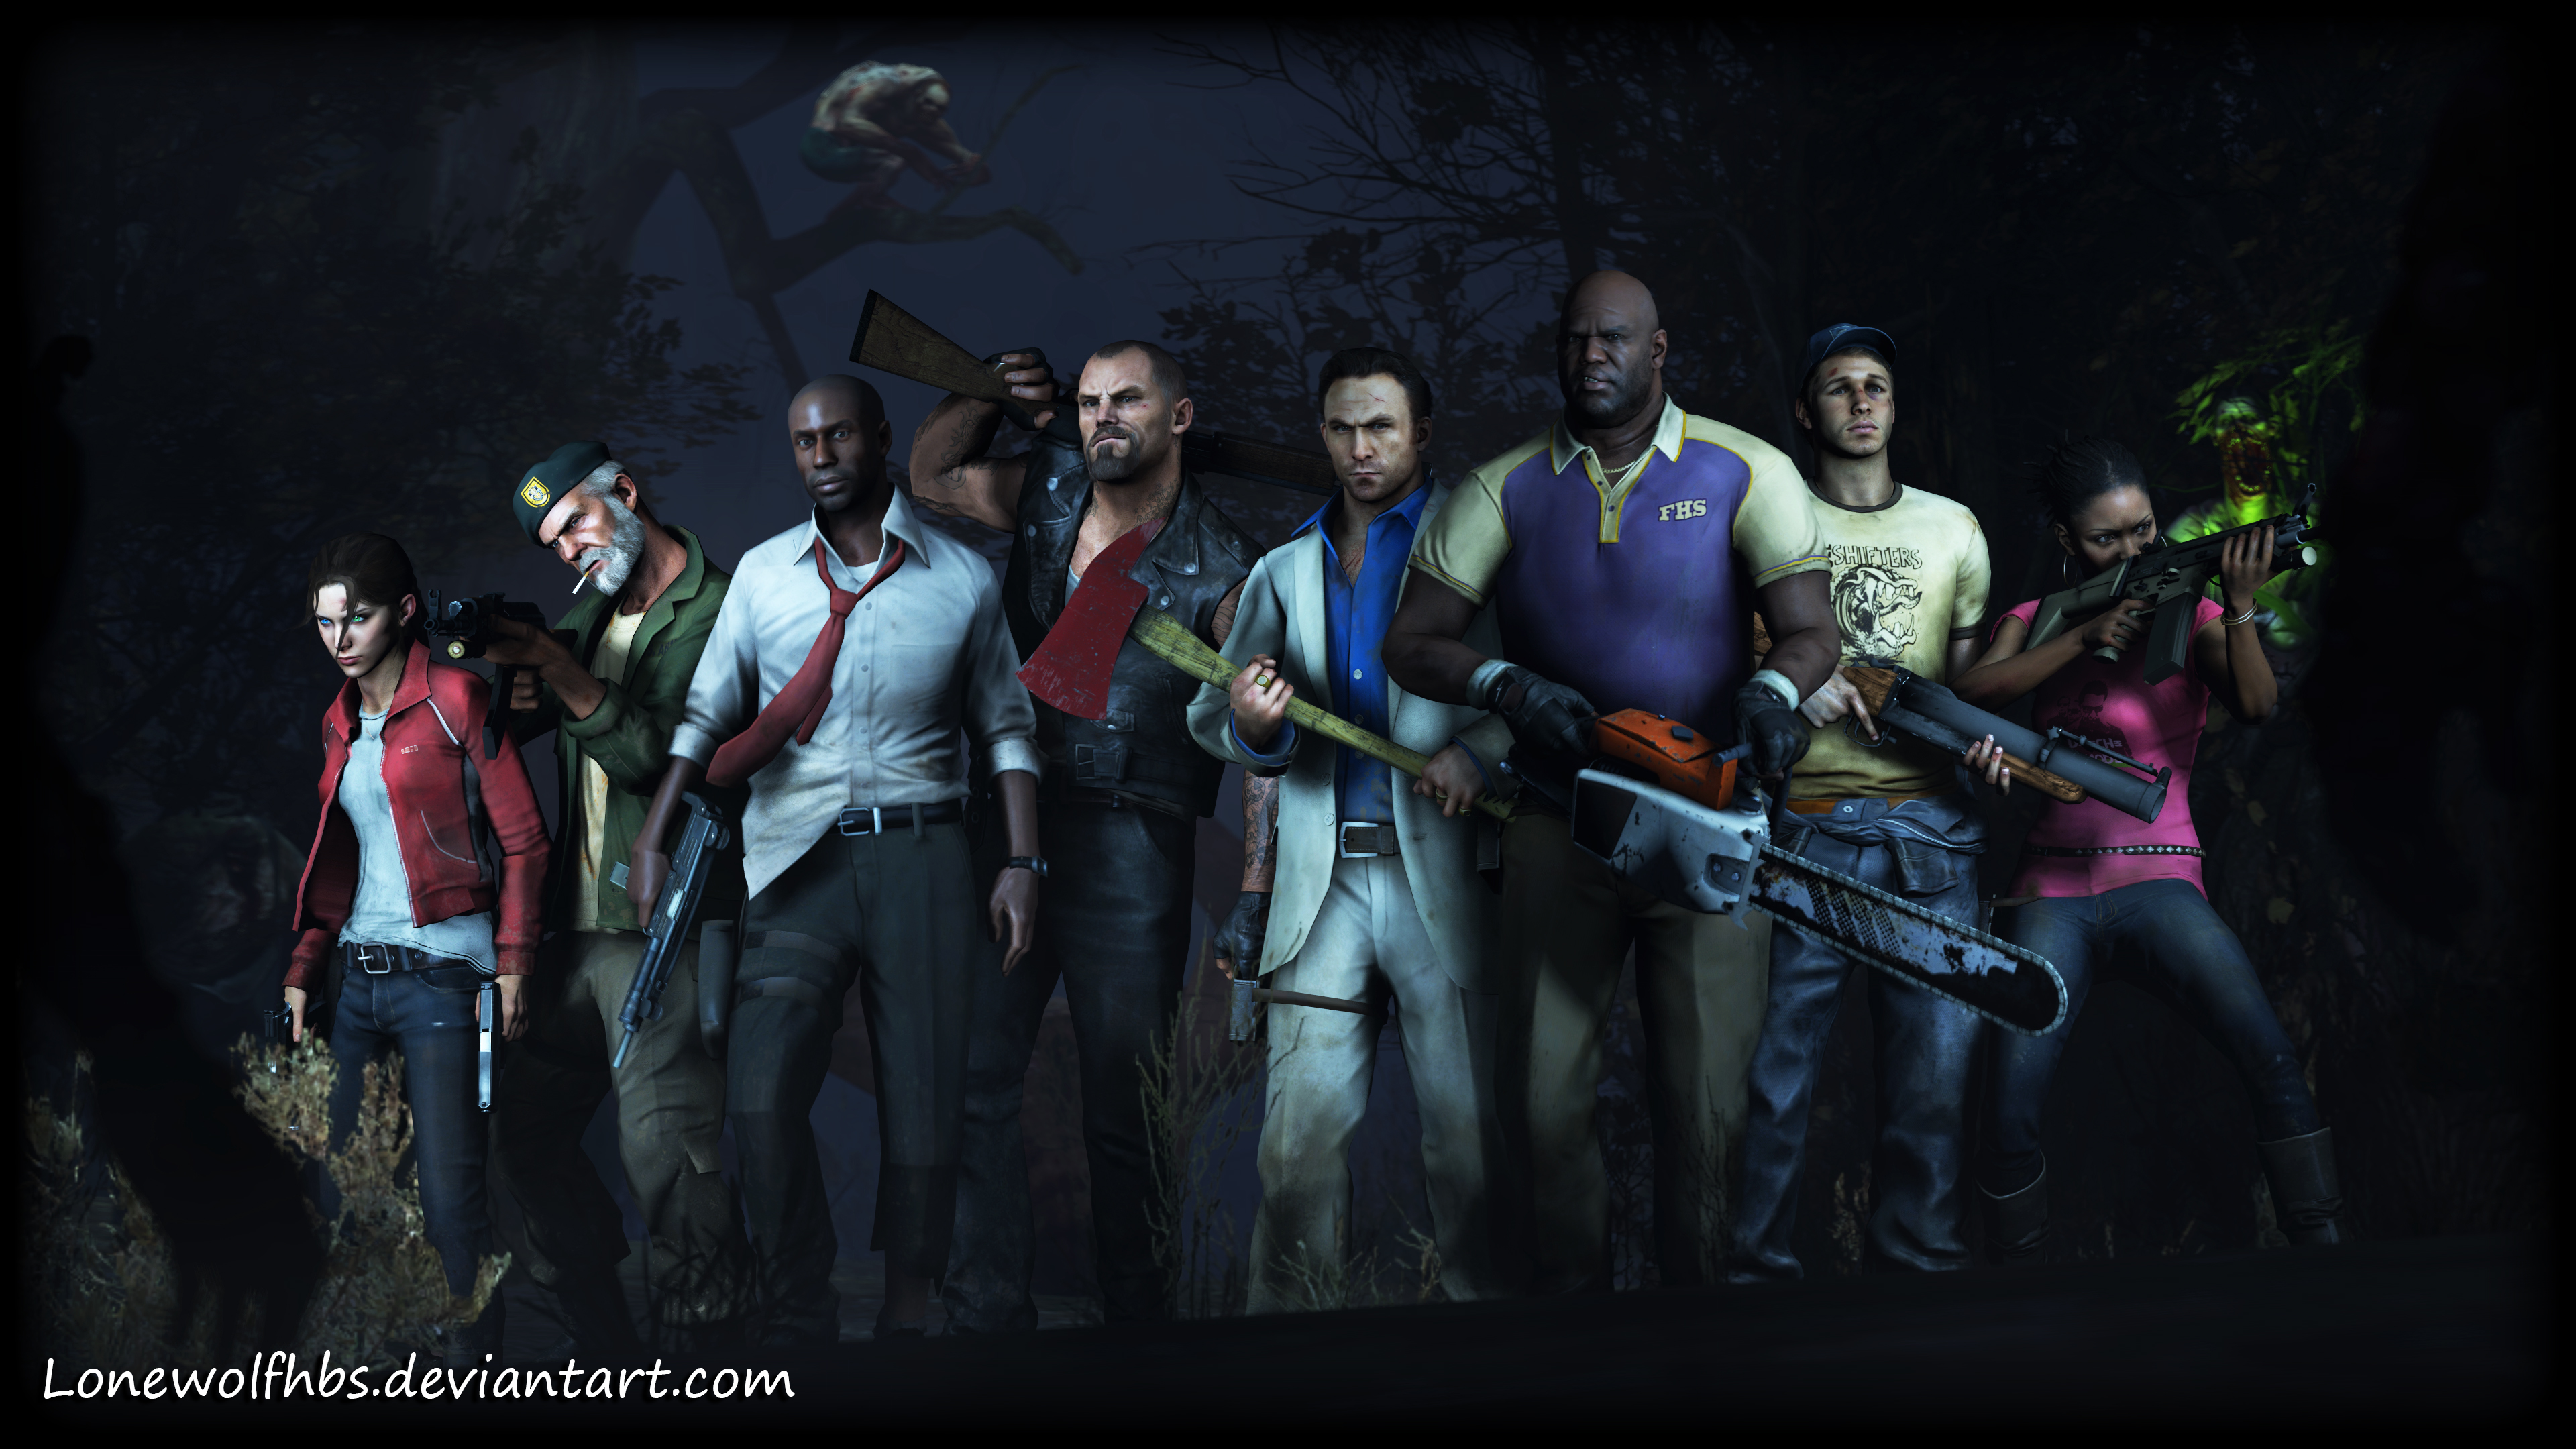 Steam Community :: :: [SFM] Left 4 Dead - Survivors